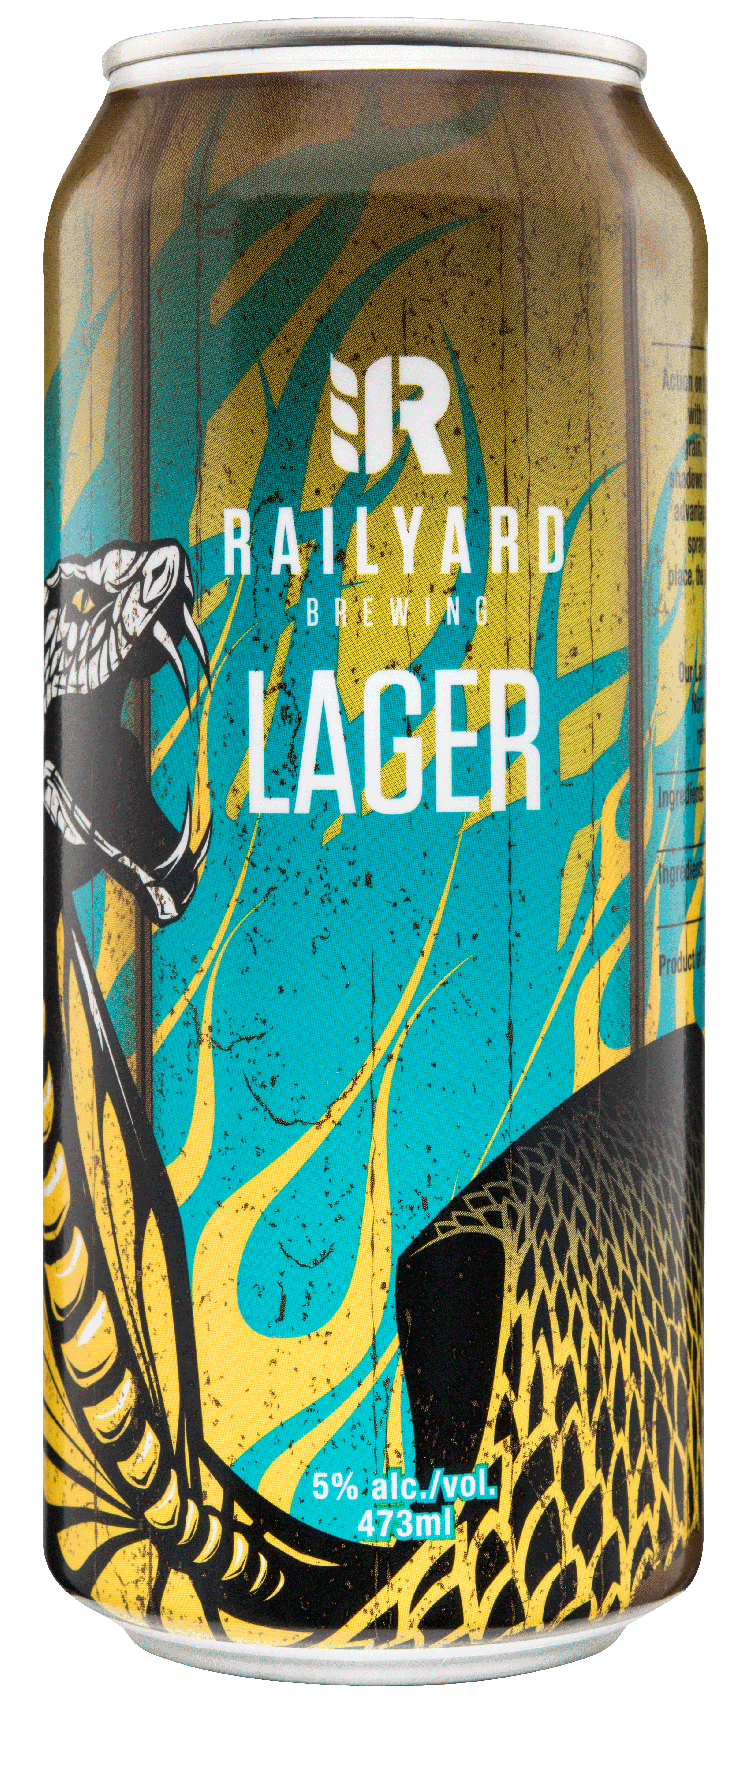 RAILYARD LAGER   Fusing the finest Alberta Malt & classic European hops the Railyard Lager brings down the rail-crossing gates when it comes to quenching your thirst. Graham cracker sweetness, balanced with a delicate hop herbaceous finish, look no further than this being the last stop of your day.